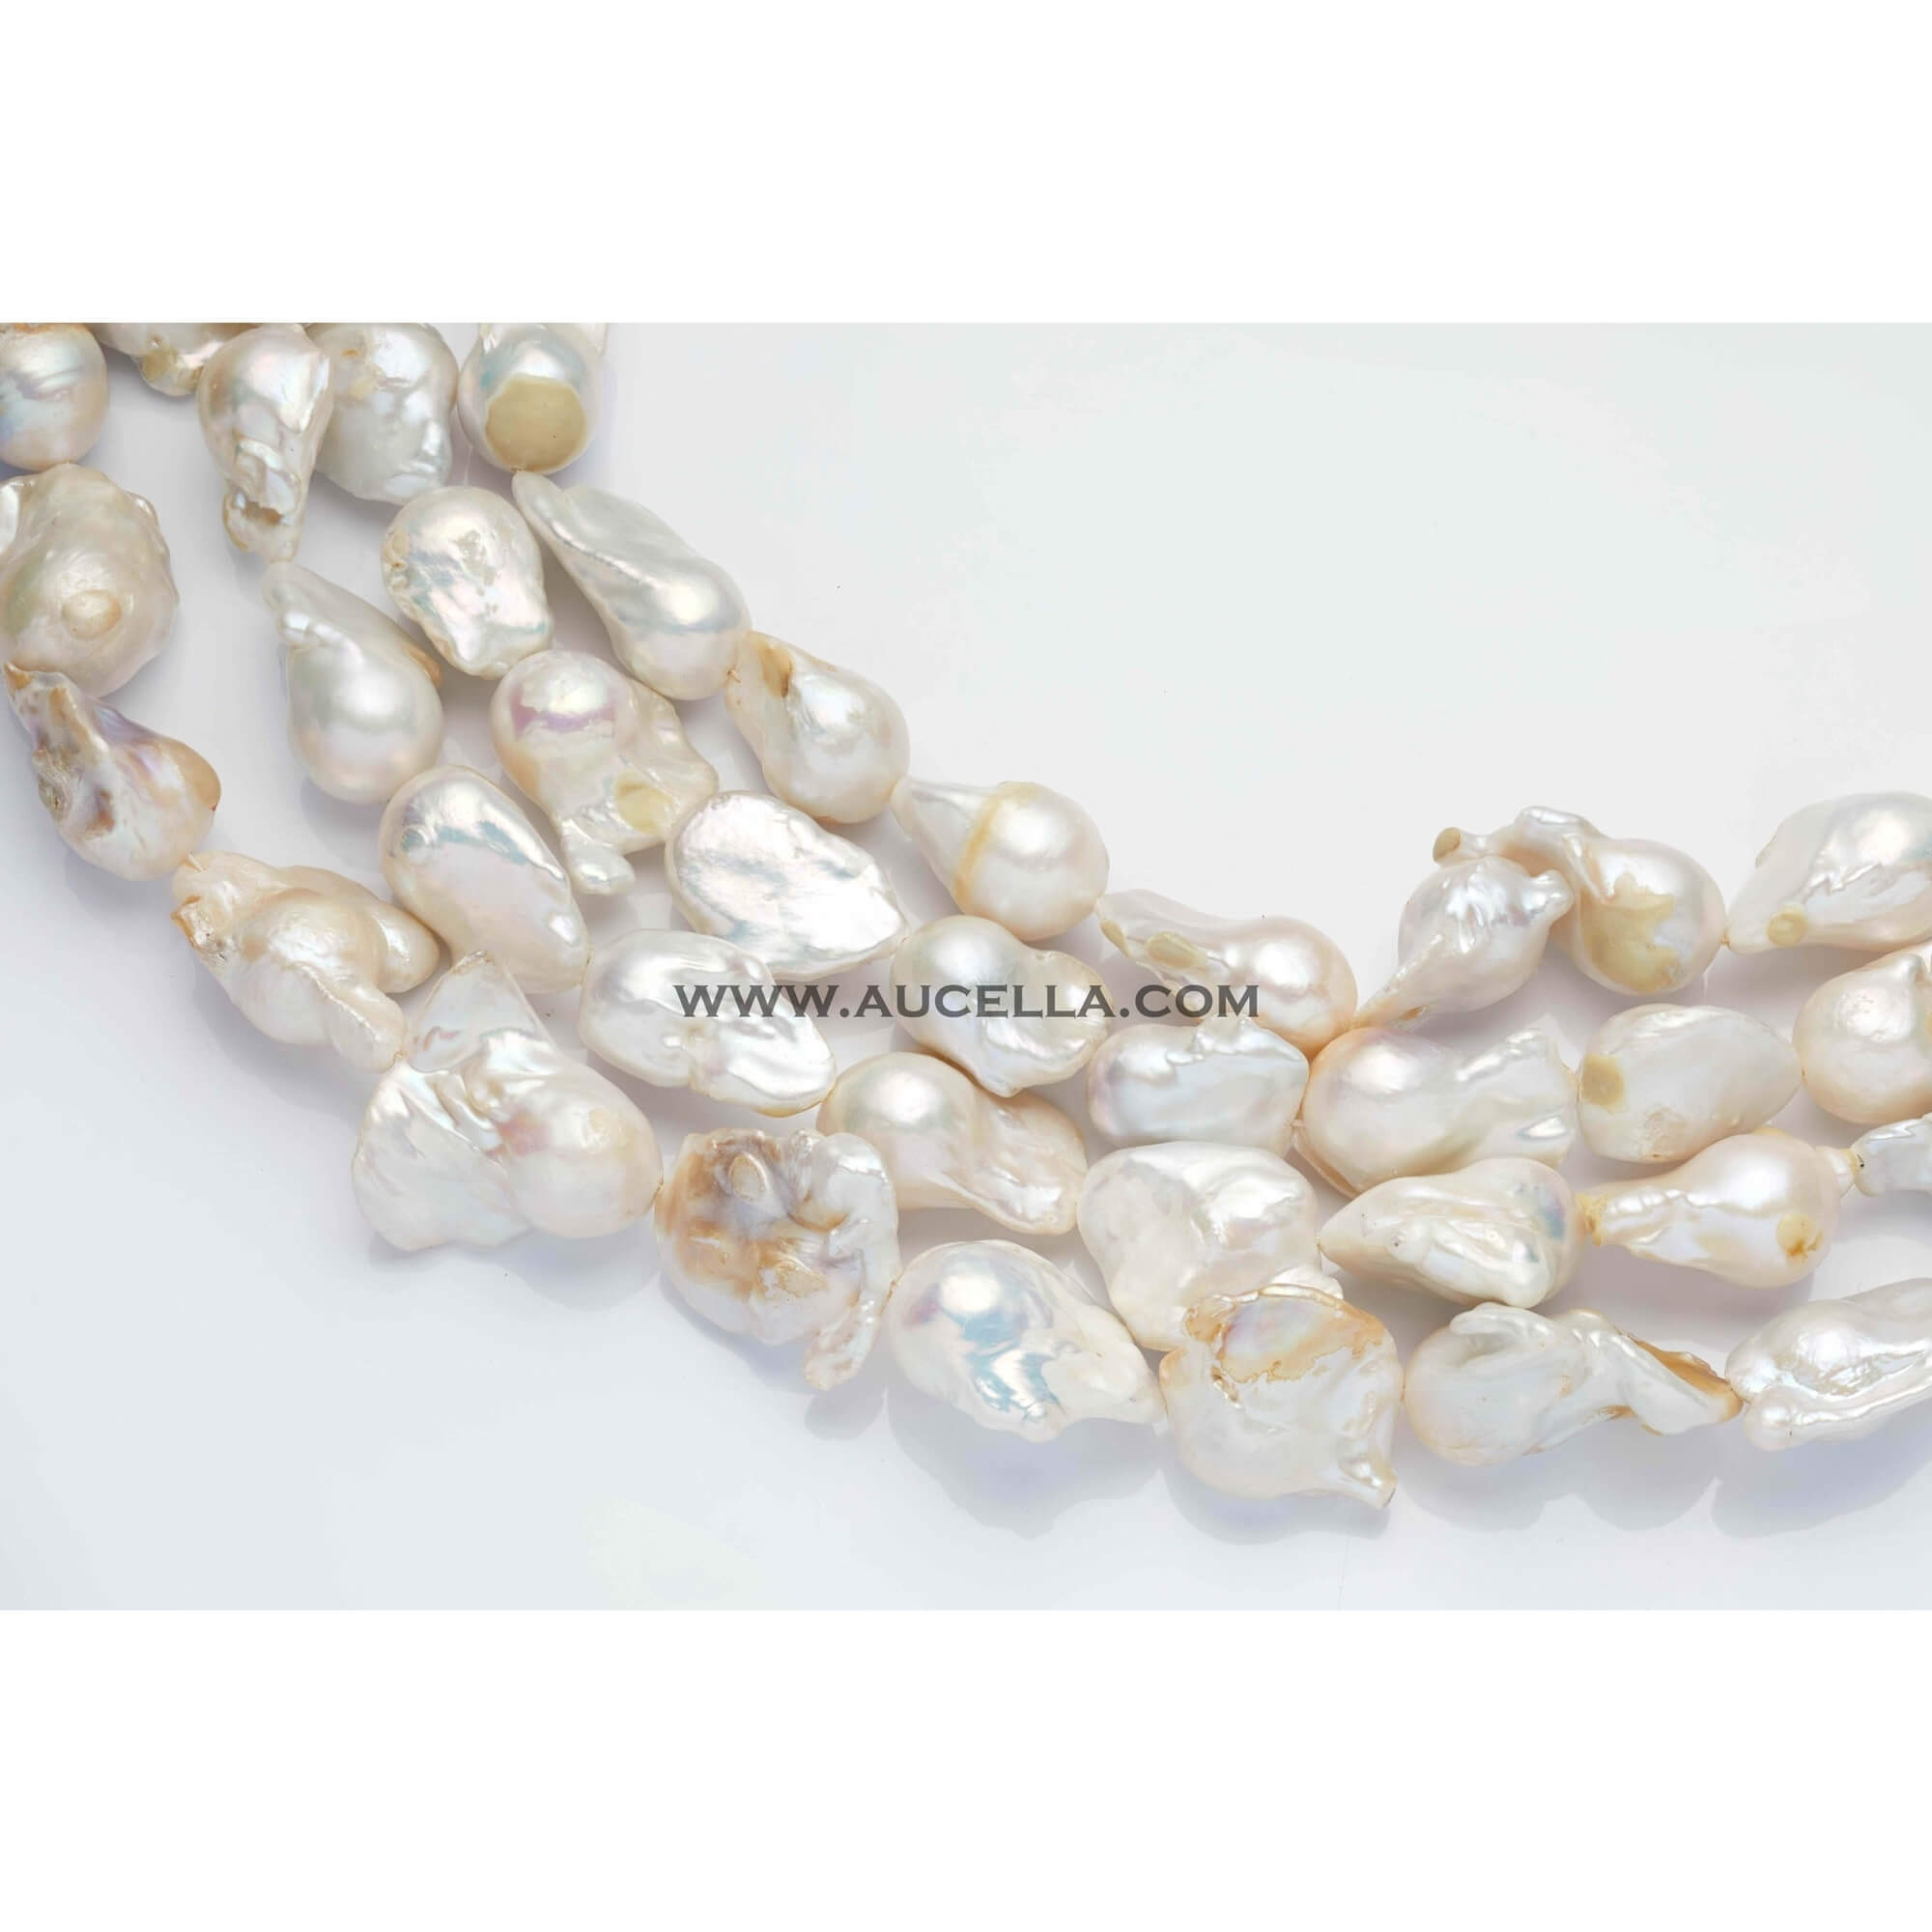 Fresh water pearls baroque 12-15 mm